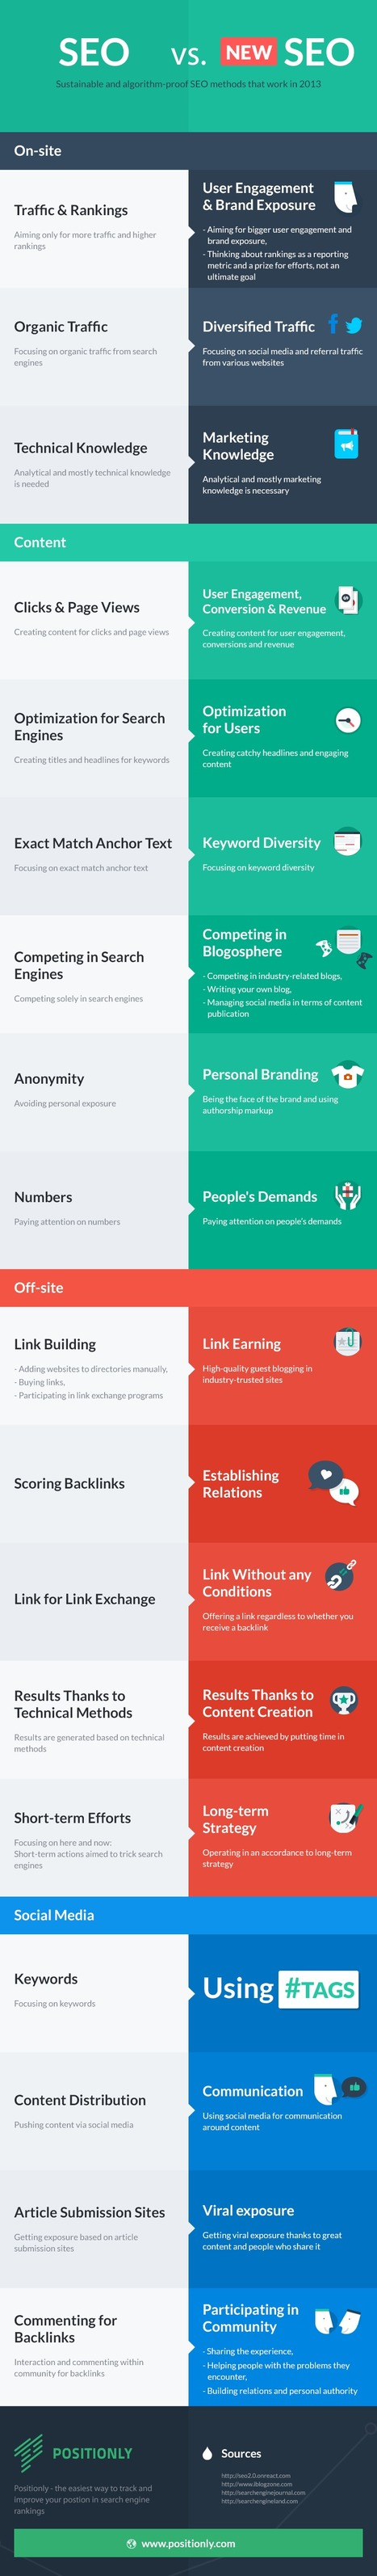 Sustainable SEO Methods - Before and Now INFOGRAPHIC | Scoop.it Tips | Scoop.it